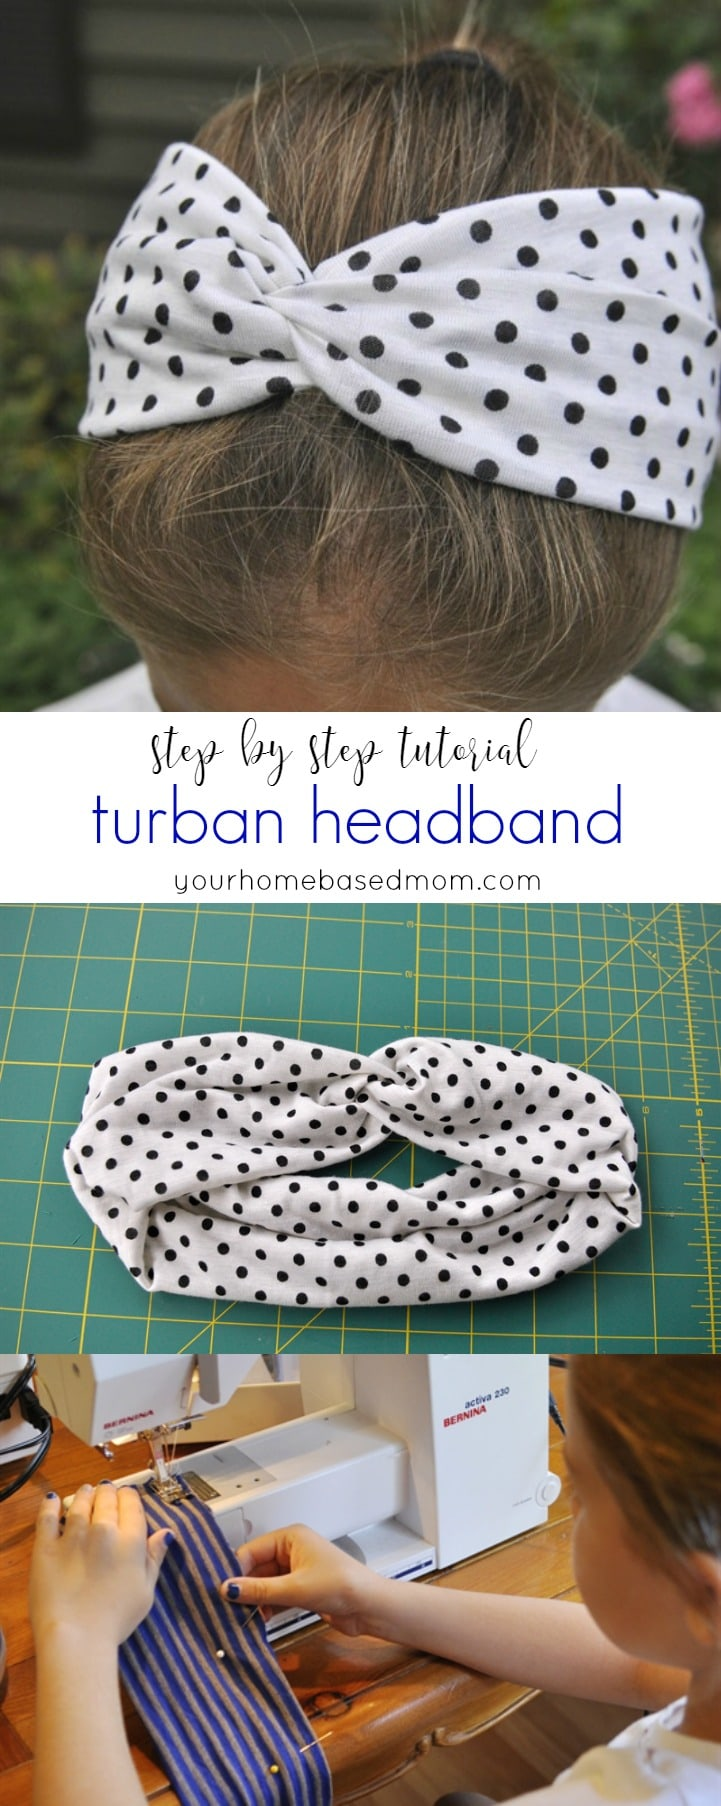 Turban headband tutorial and printableactivity day idea your turban headband step by step tutorial yourhomebasedmom baditri Images